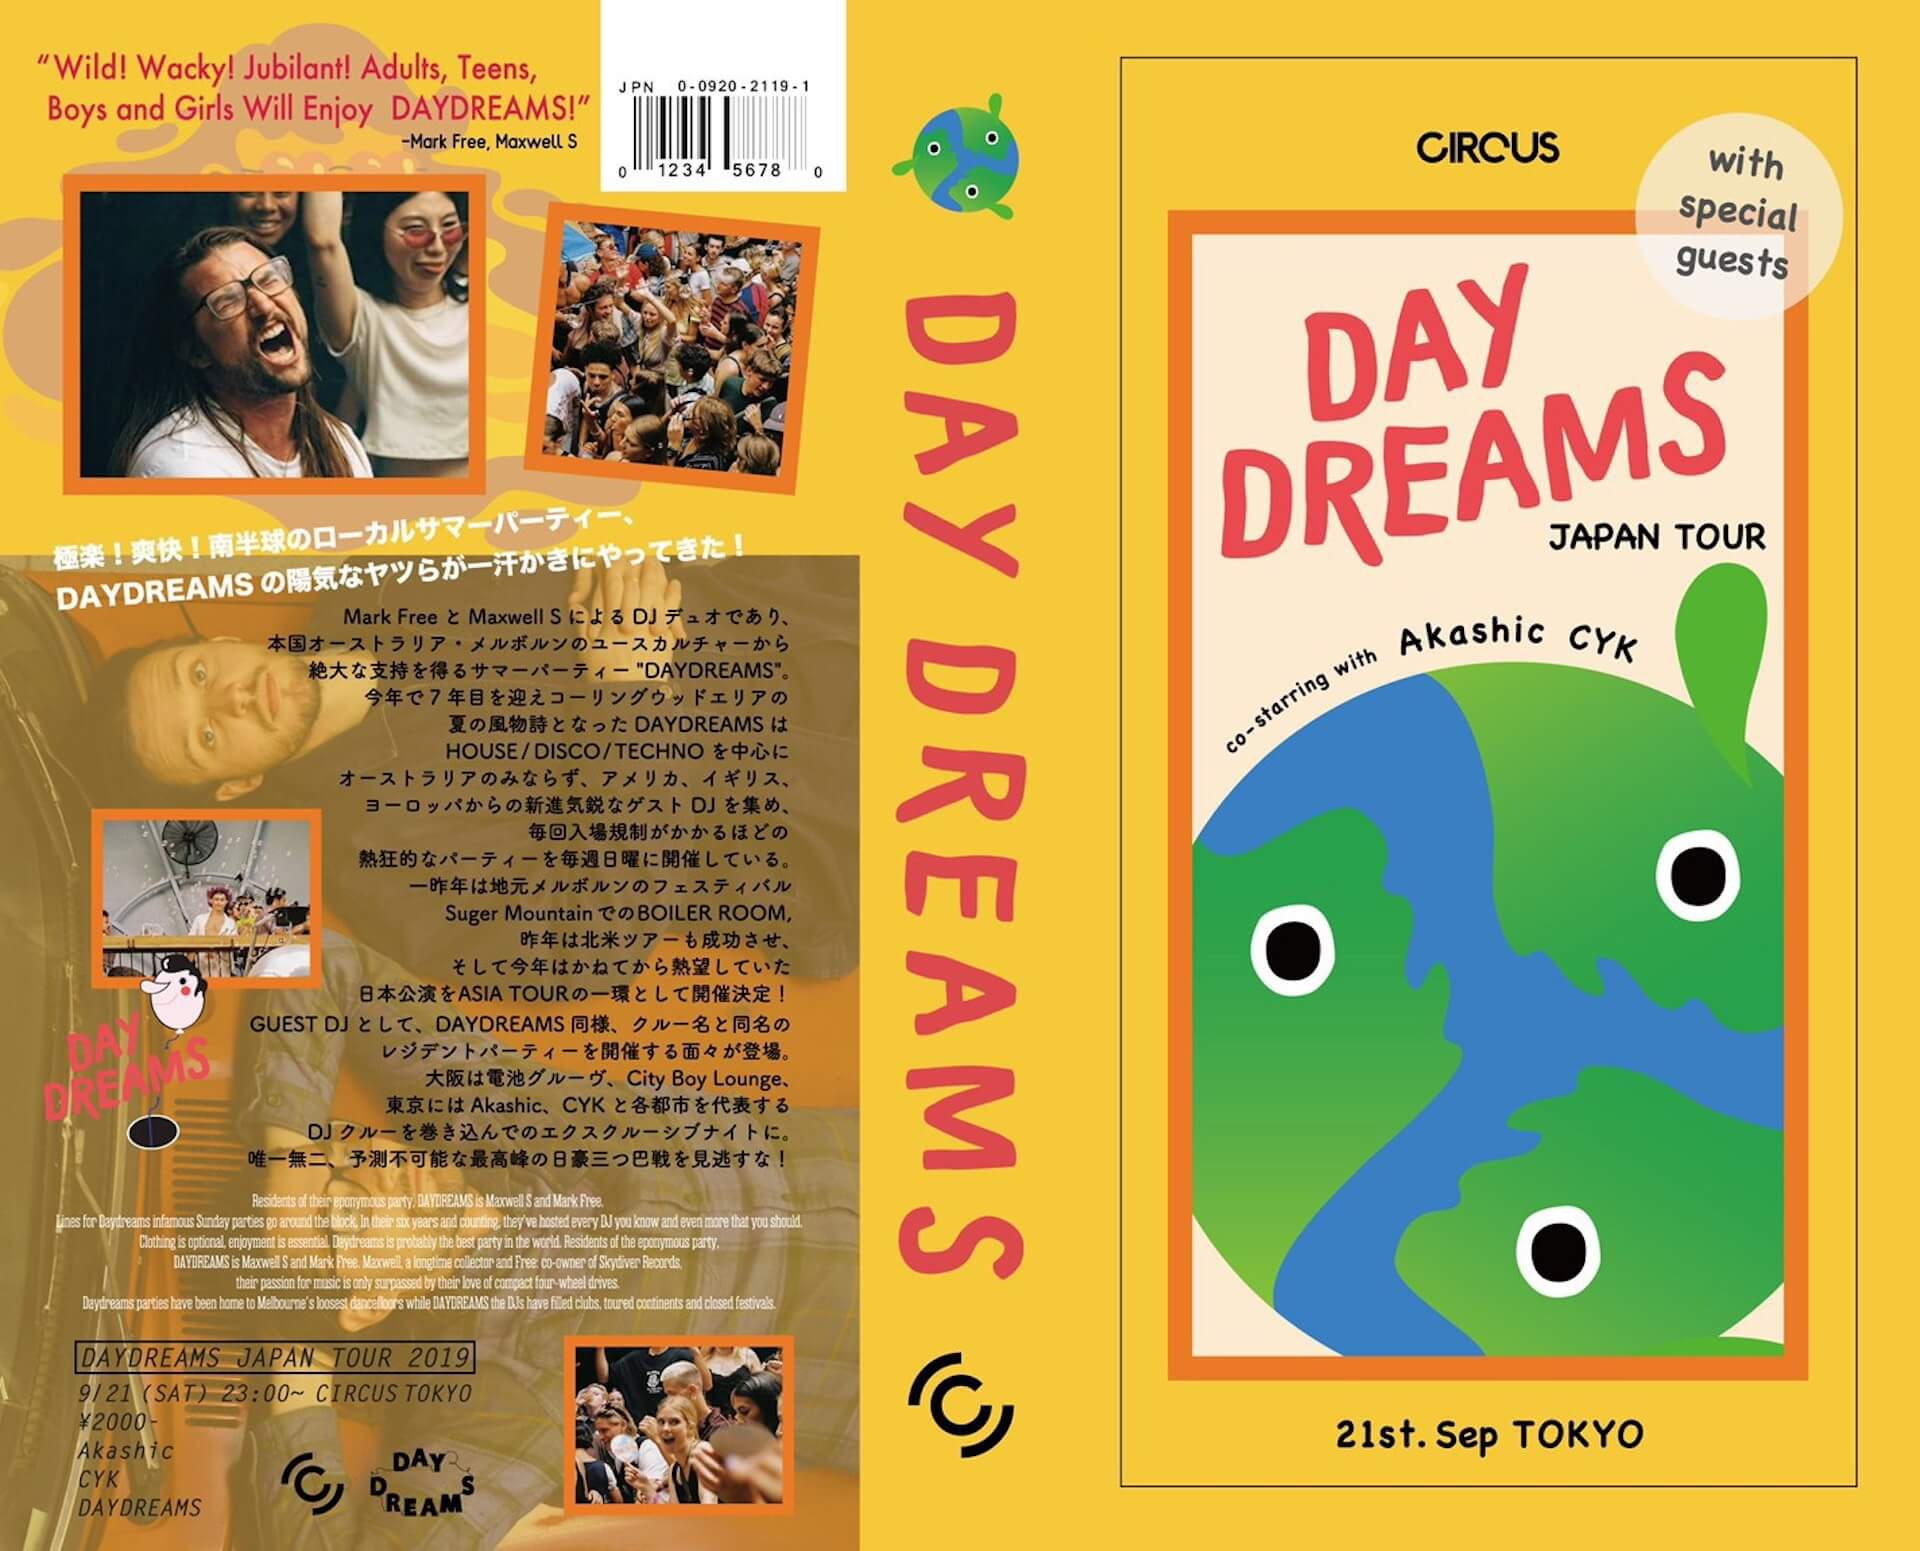 メルボルンのDJデュオDAYDREAMSがCIRCUSに初来日|ゲストDJにCYK、City Boy Loungeが出演 190829music_daydreamsjapantour01